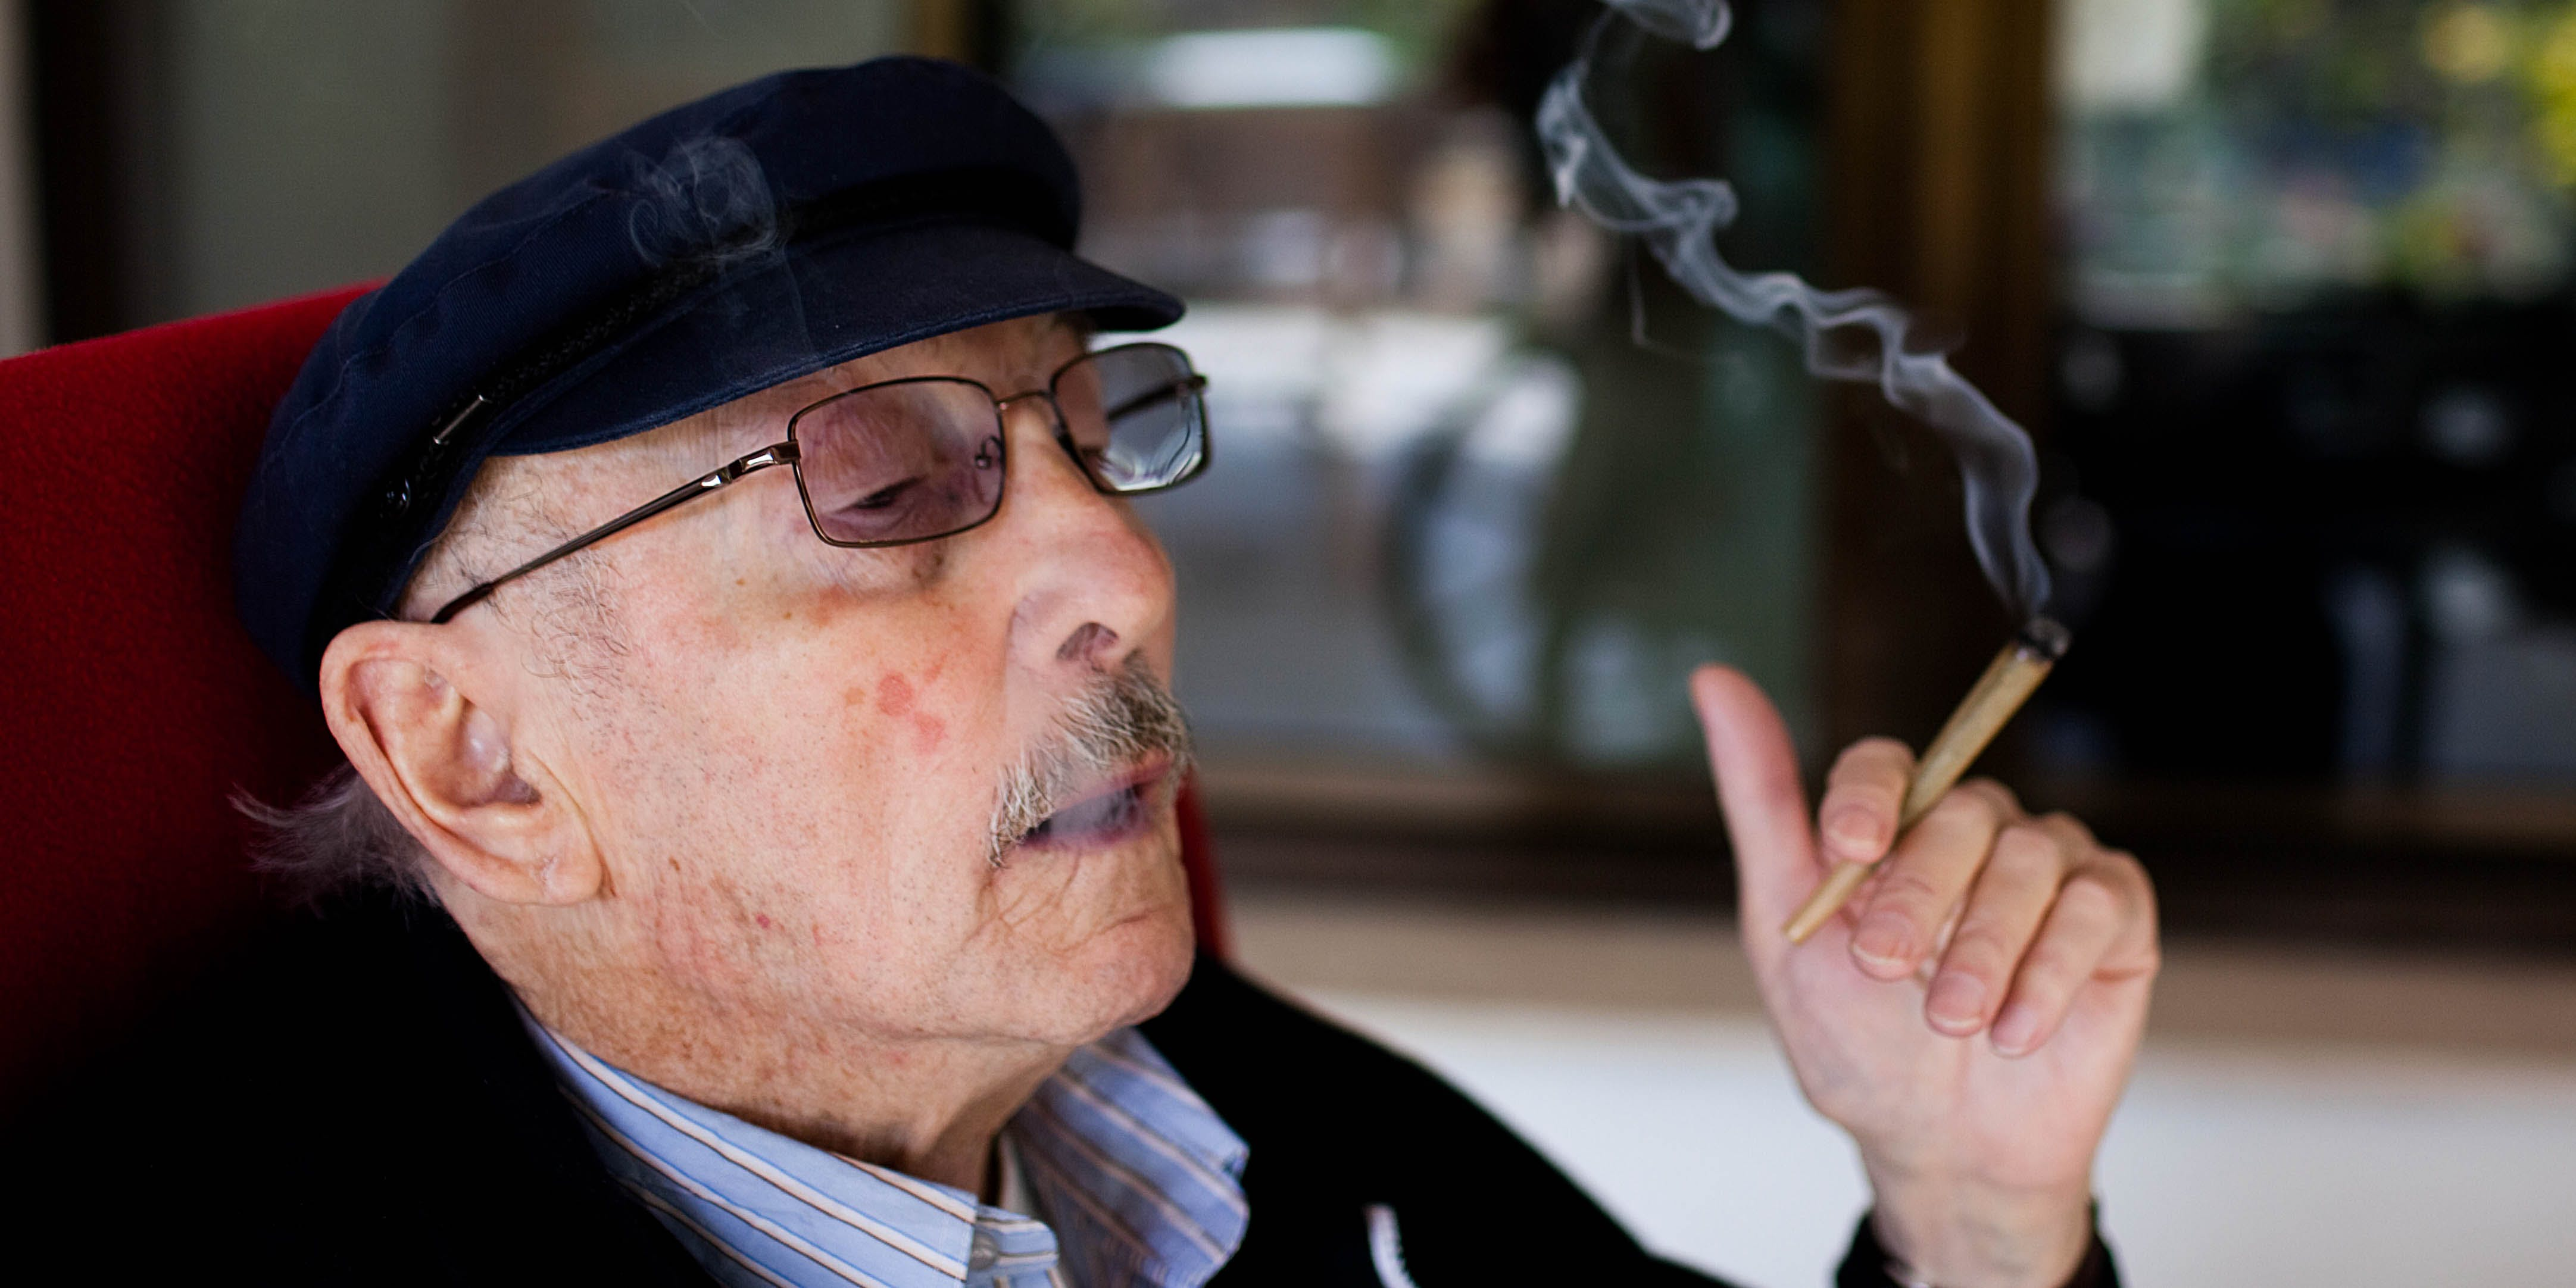 A man smokes cannabis at a nursing home in Israel. Most pain specialists are prescribing cannabis to patients to deal with pain.